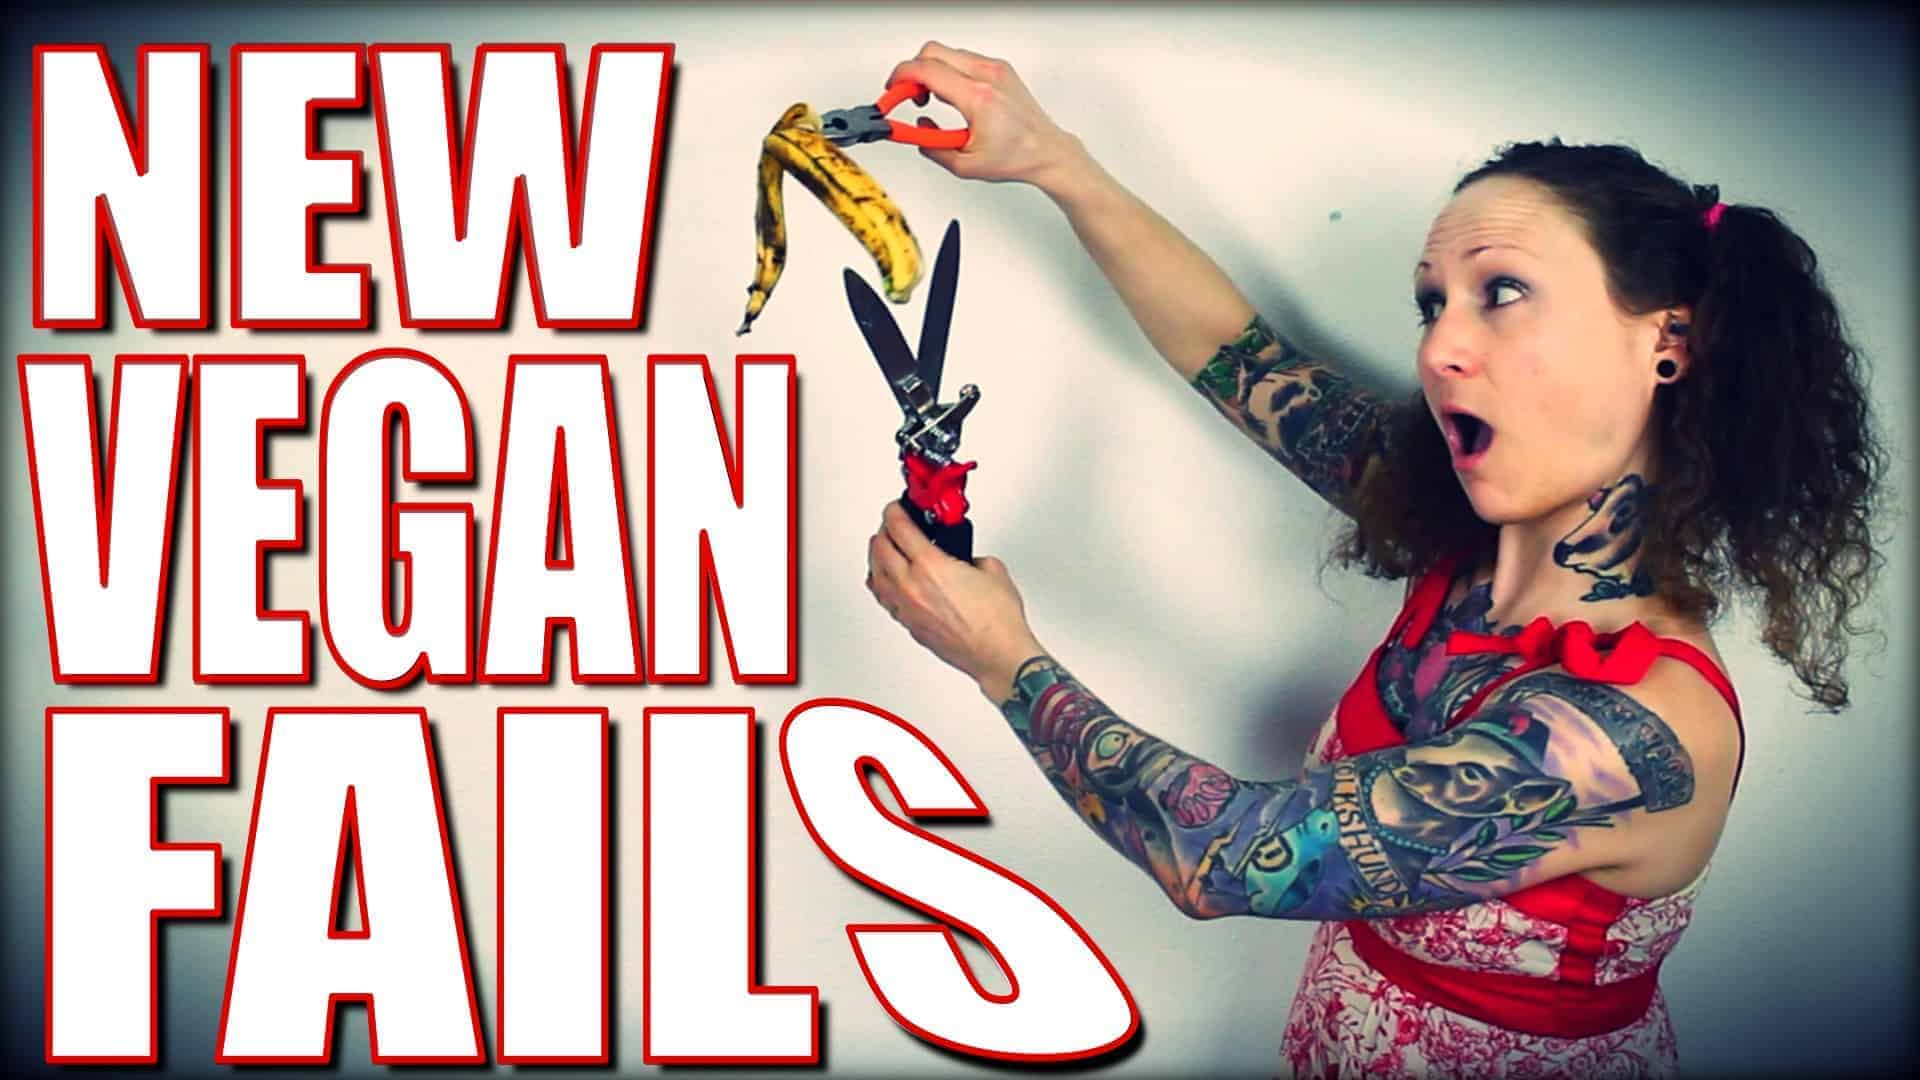 Emily holding an old partially peeled banana with pliers while chopping it with a pair of sheers. Large white text that says New Vegan Fails outlined in red